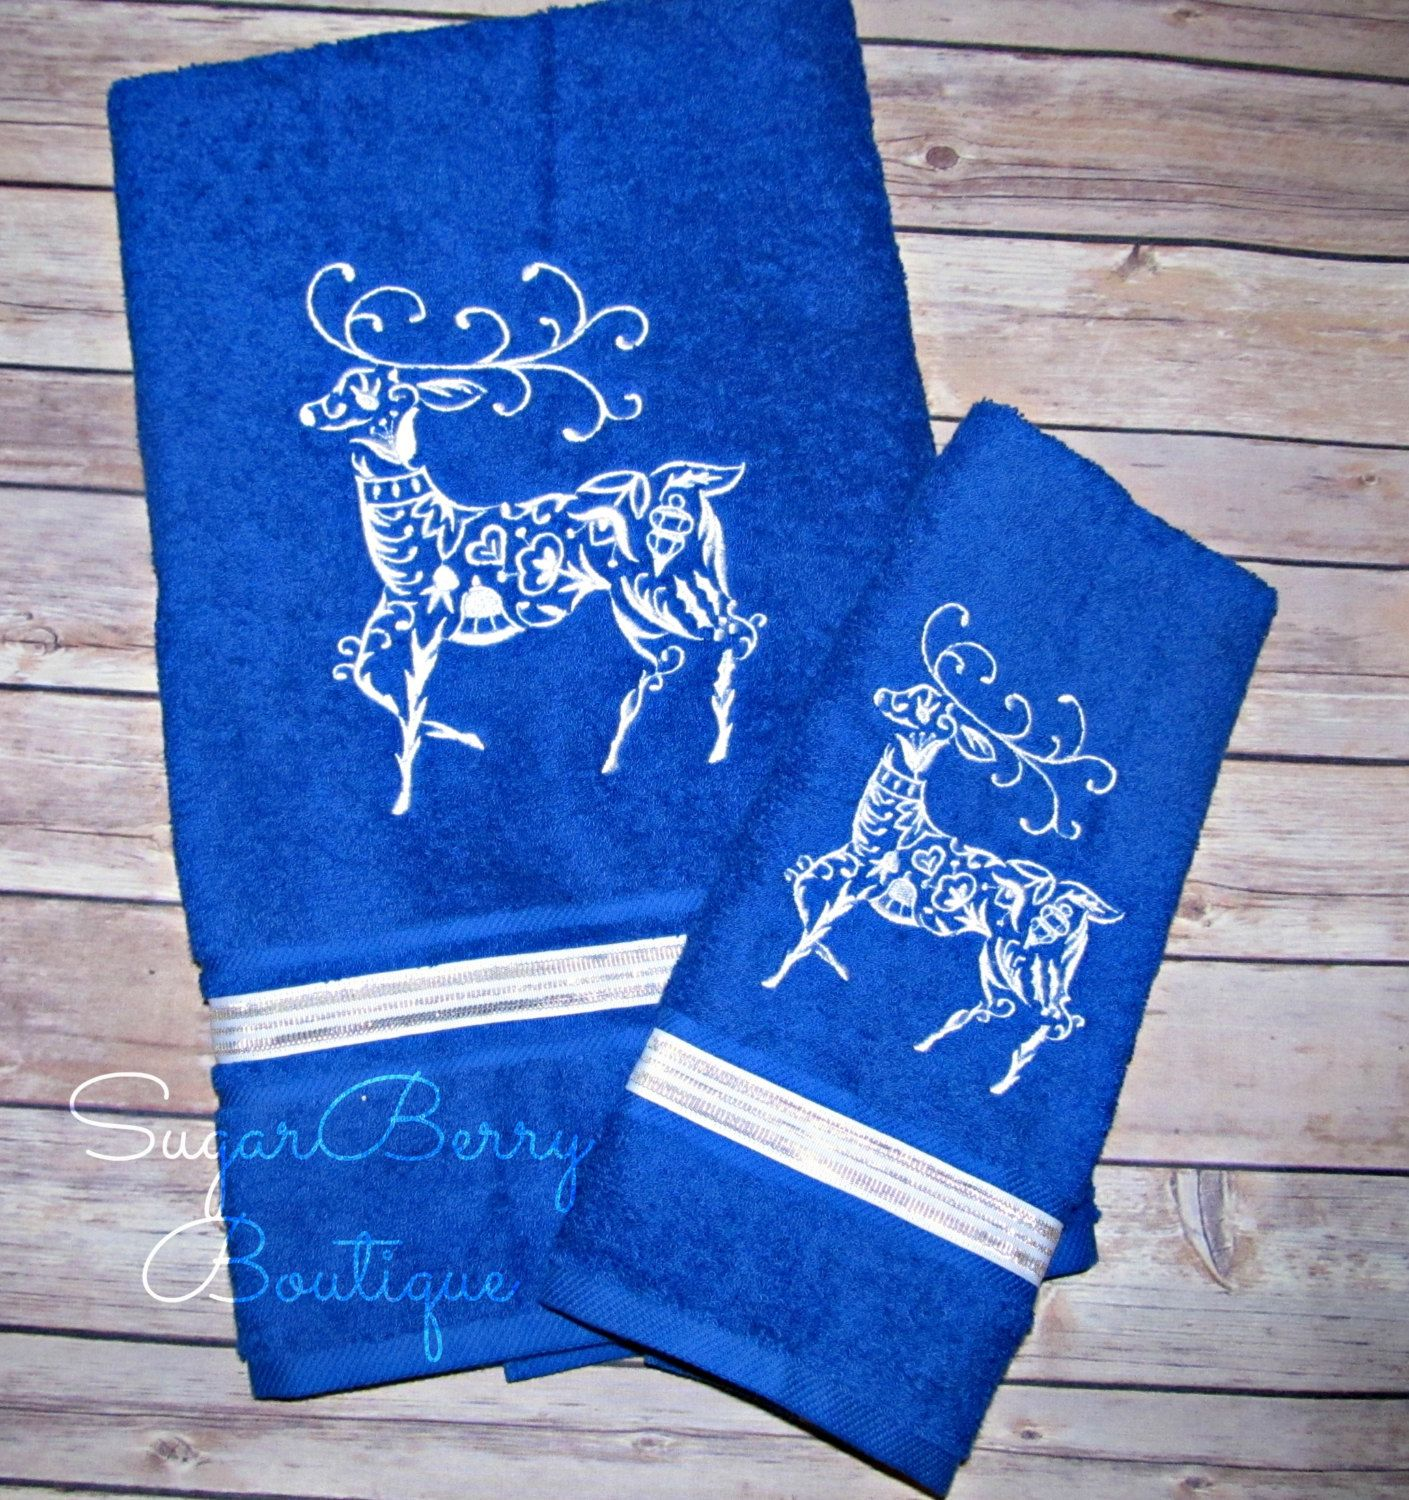 White Christmas Towels Reindeer Towels Holiday Bath Decor